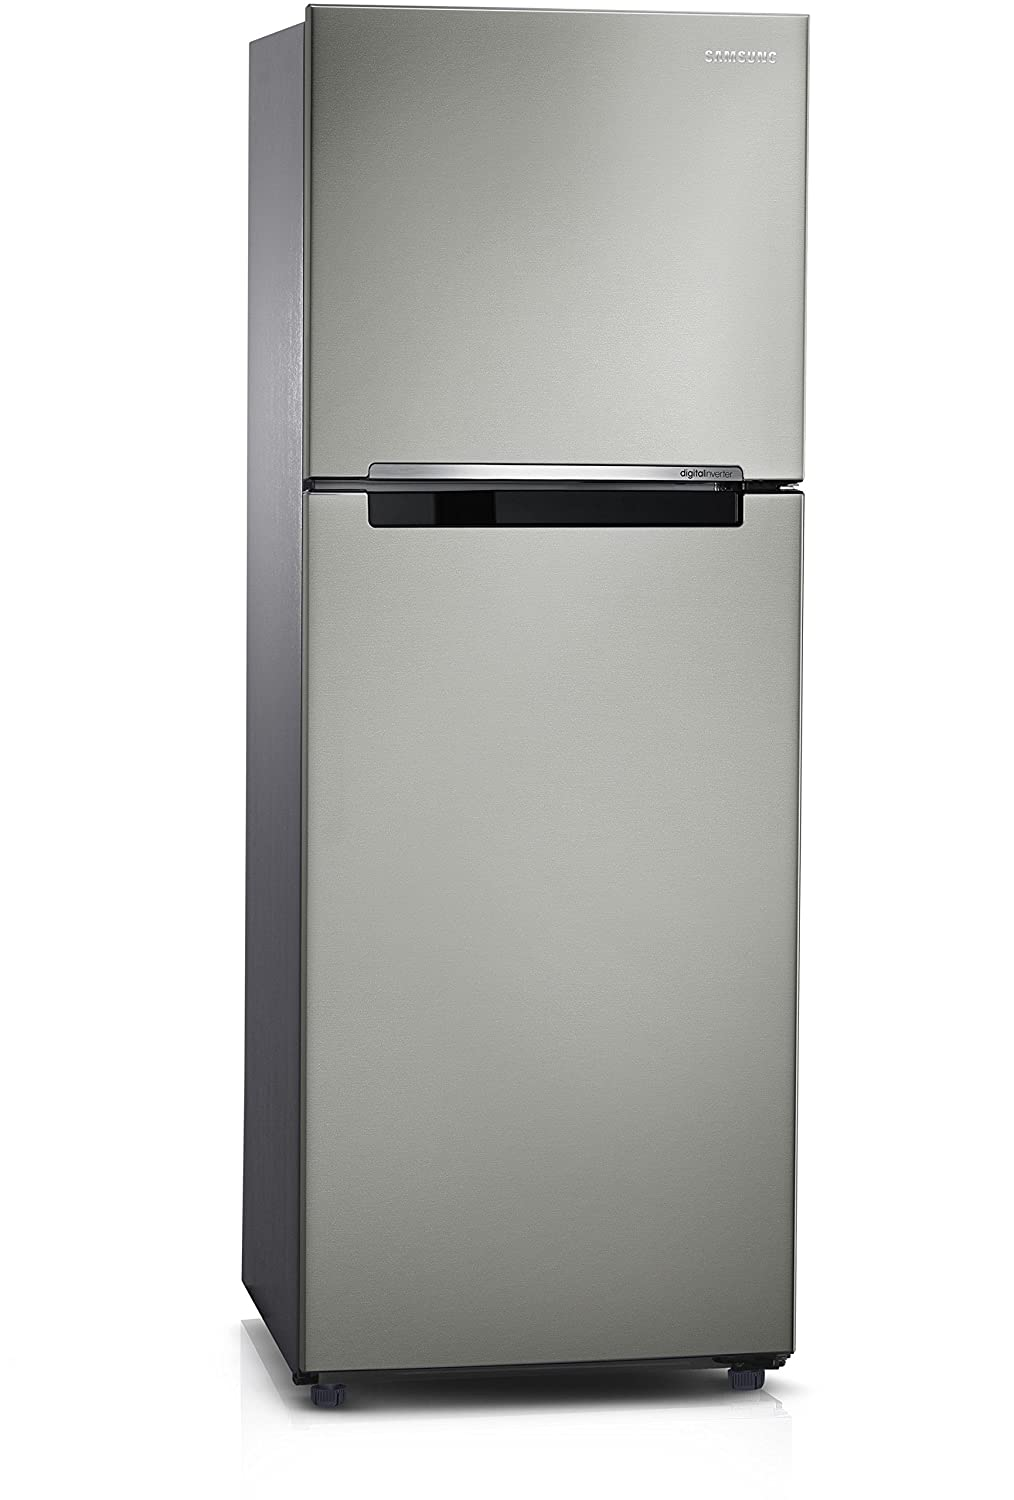 buy freezers bhatbhatenionline gl zoom door com lg double gt from refrigerator ltr loading